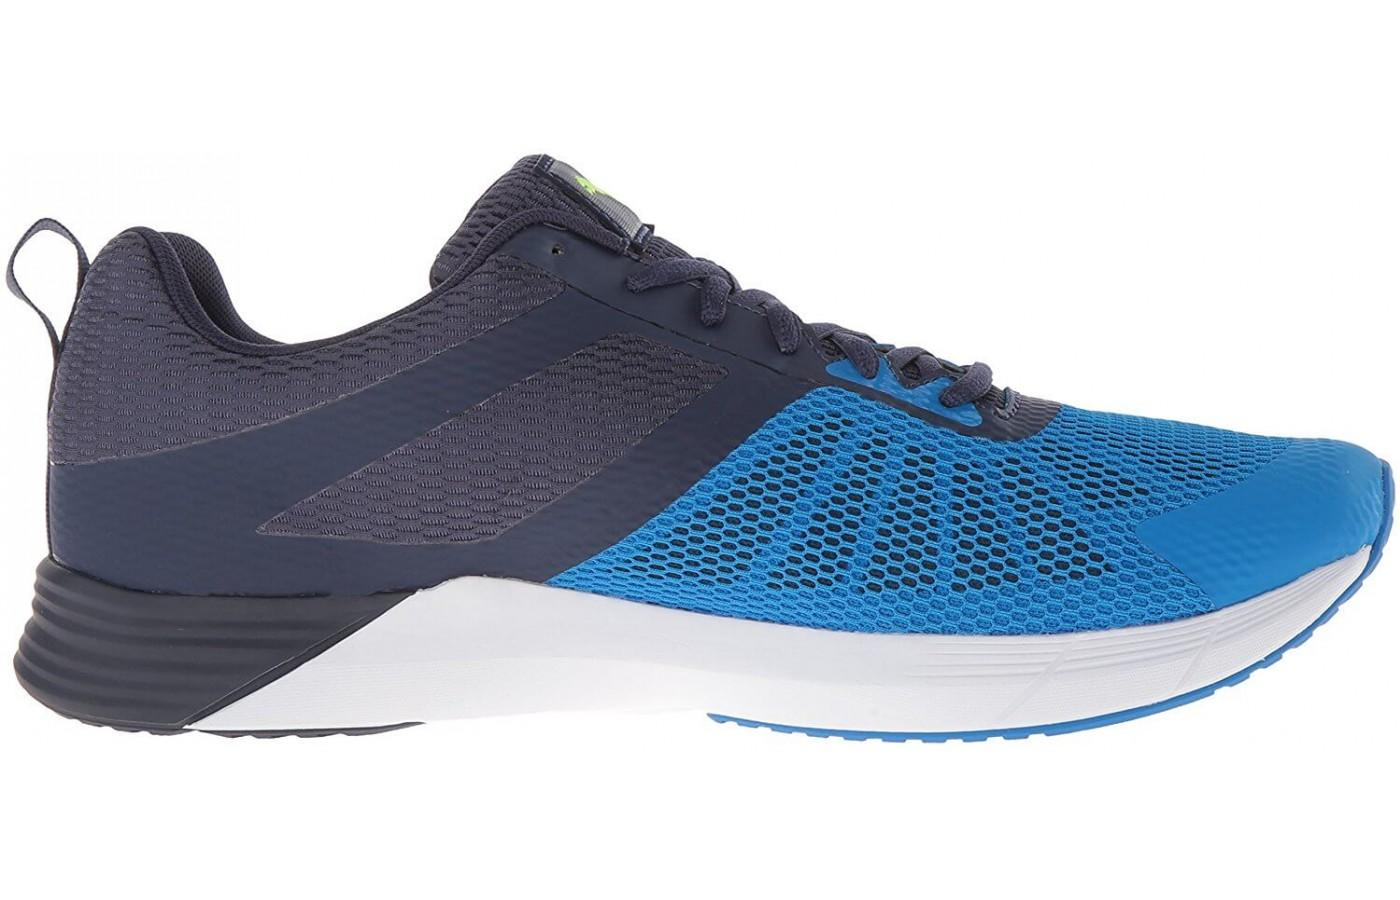 the style of the Puma Propel was very popular with testers